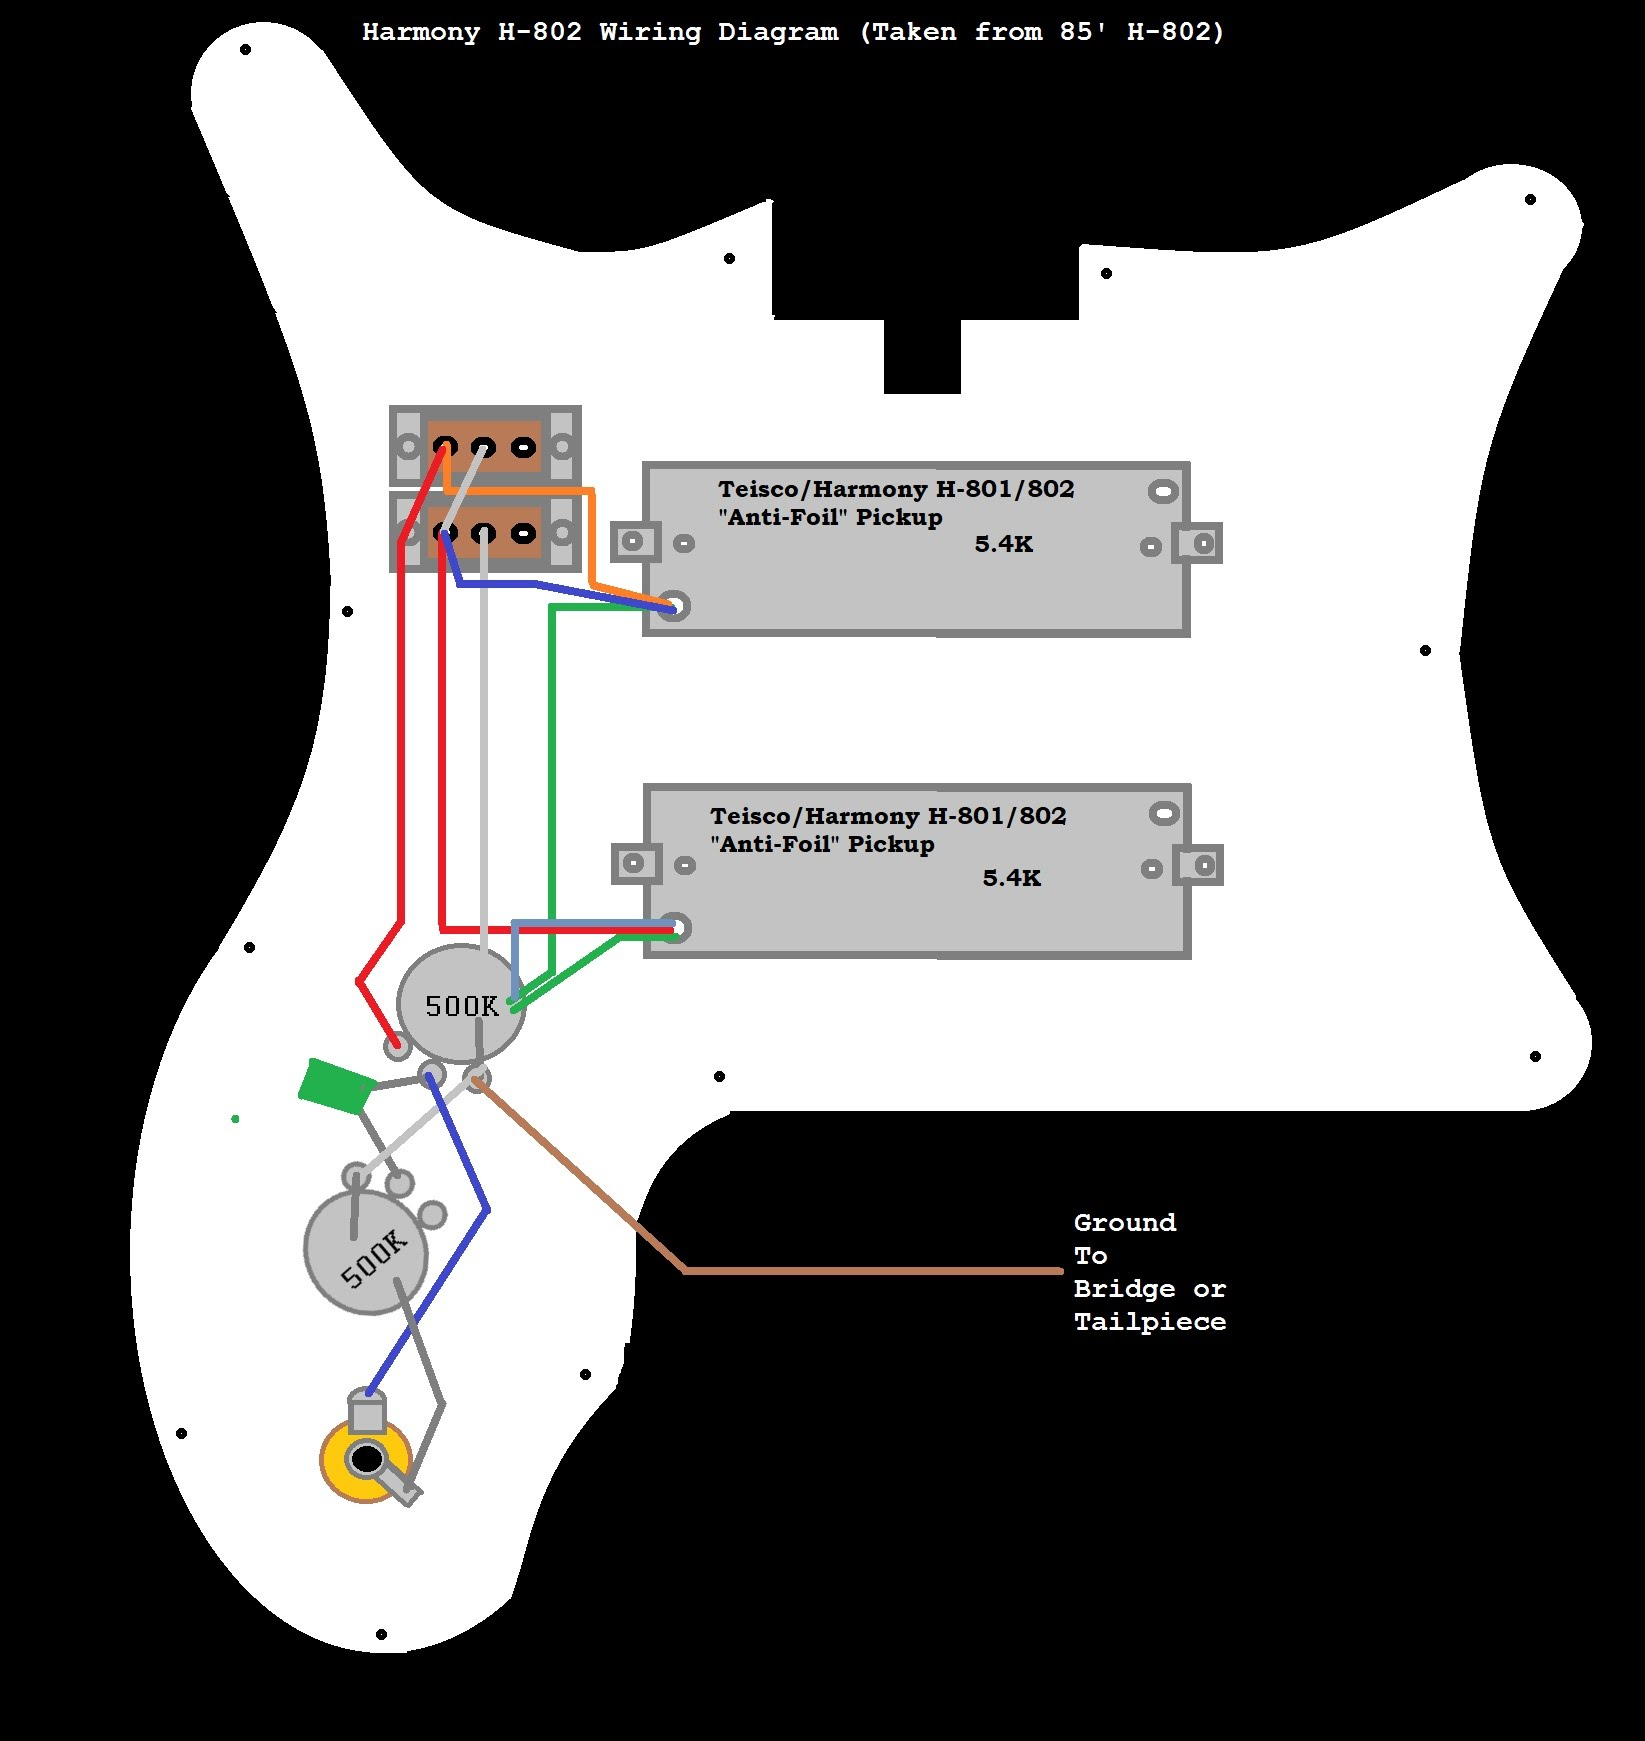 Wiring Diagrams - The Harmony H-80x/281x SiteGoogle Sites